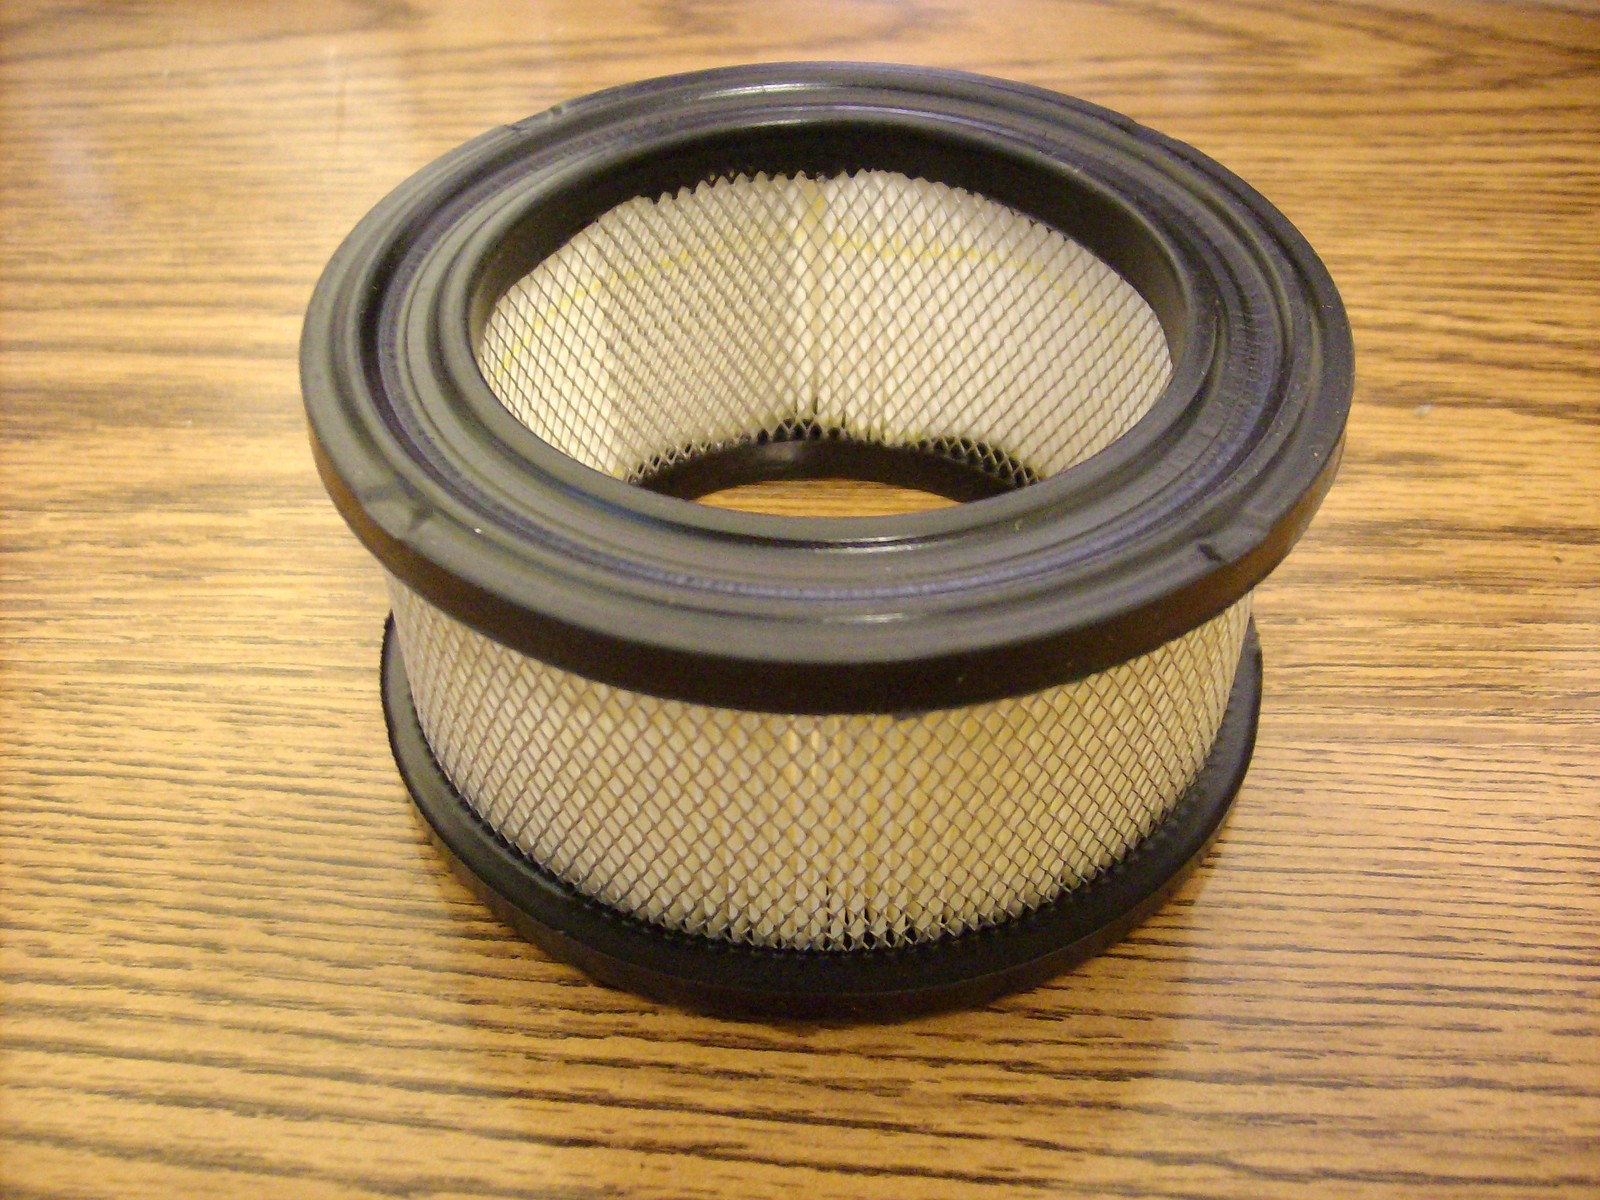 Cub Cadet lawn mower air filter 548436R1 / KH231847 / KH231847S / KH231847S1